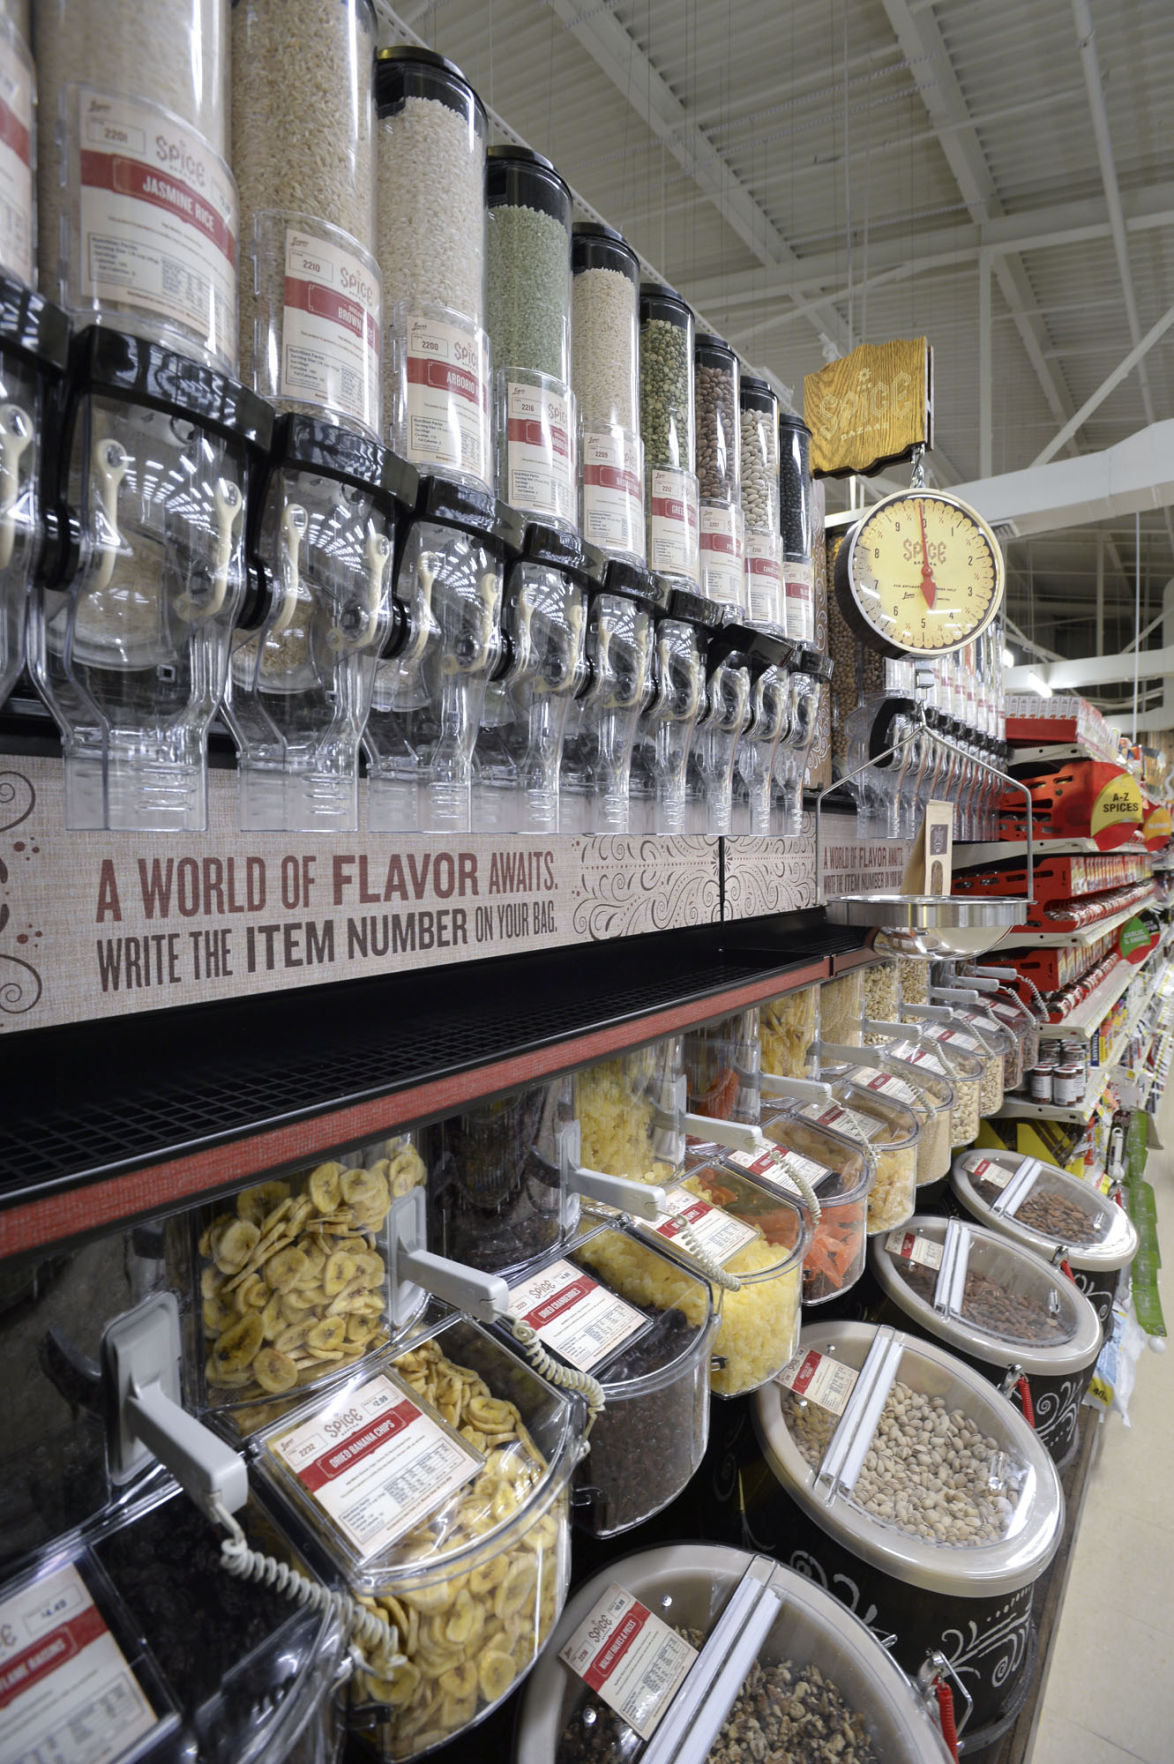 Lowes Foods is spicing things up with new marketing strategy